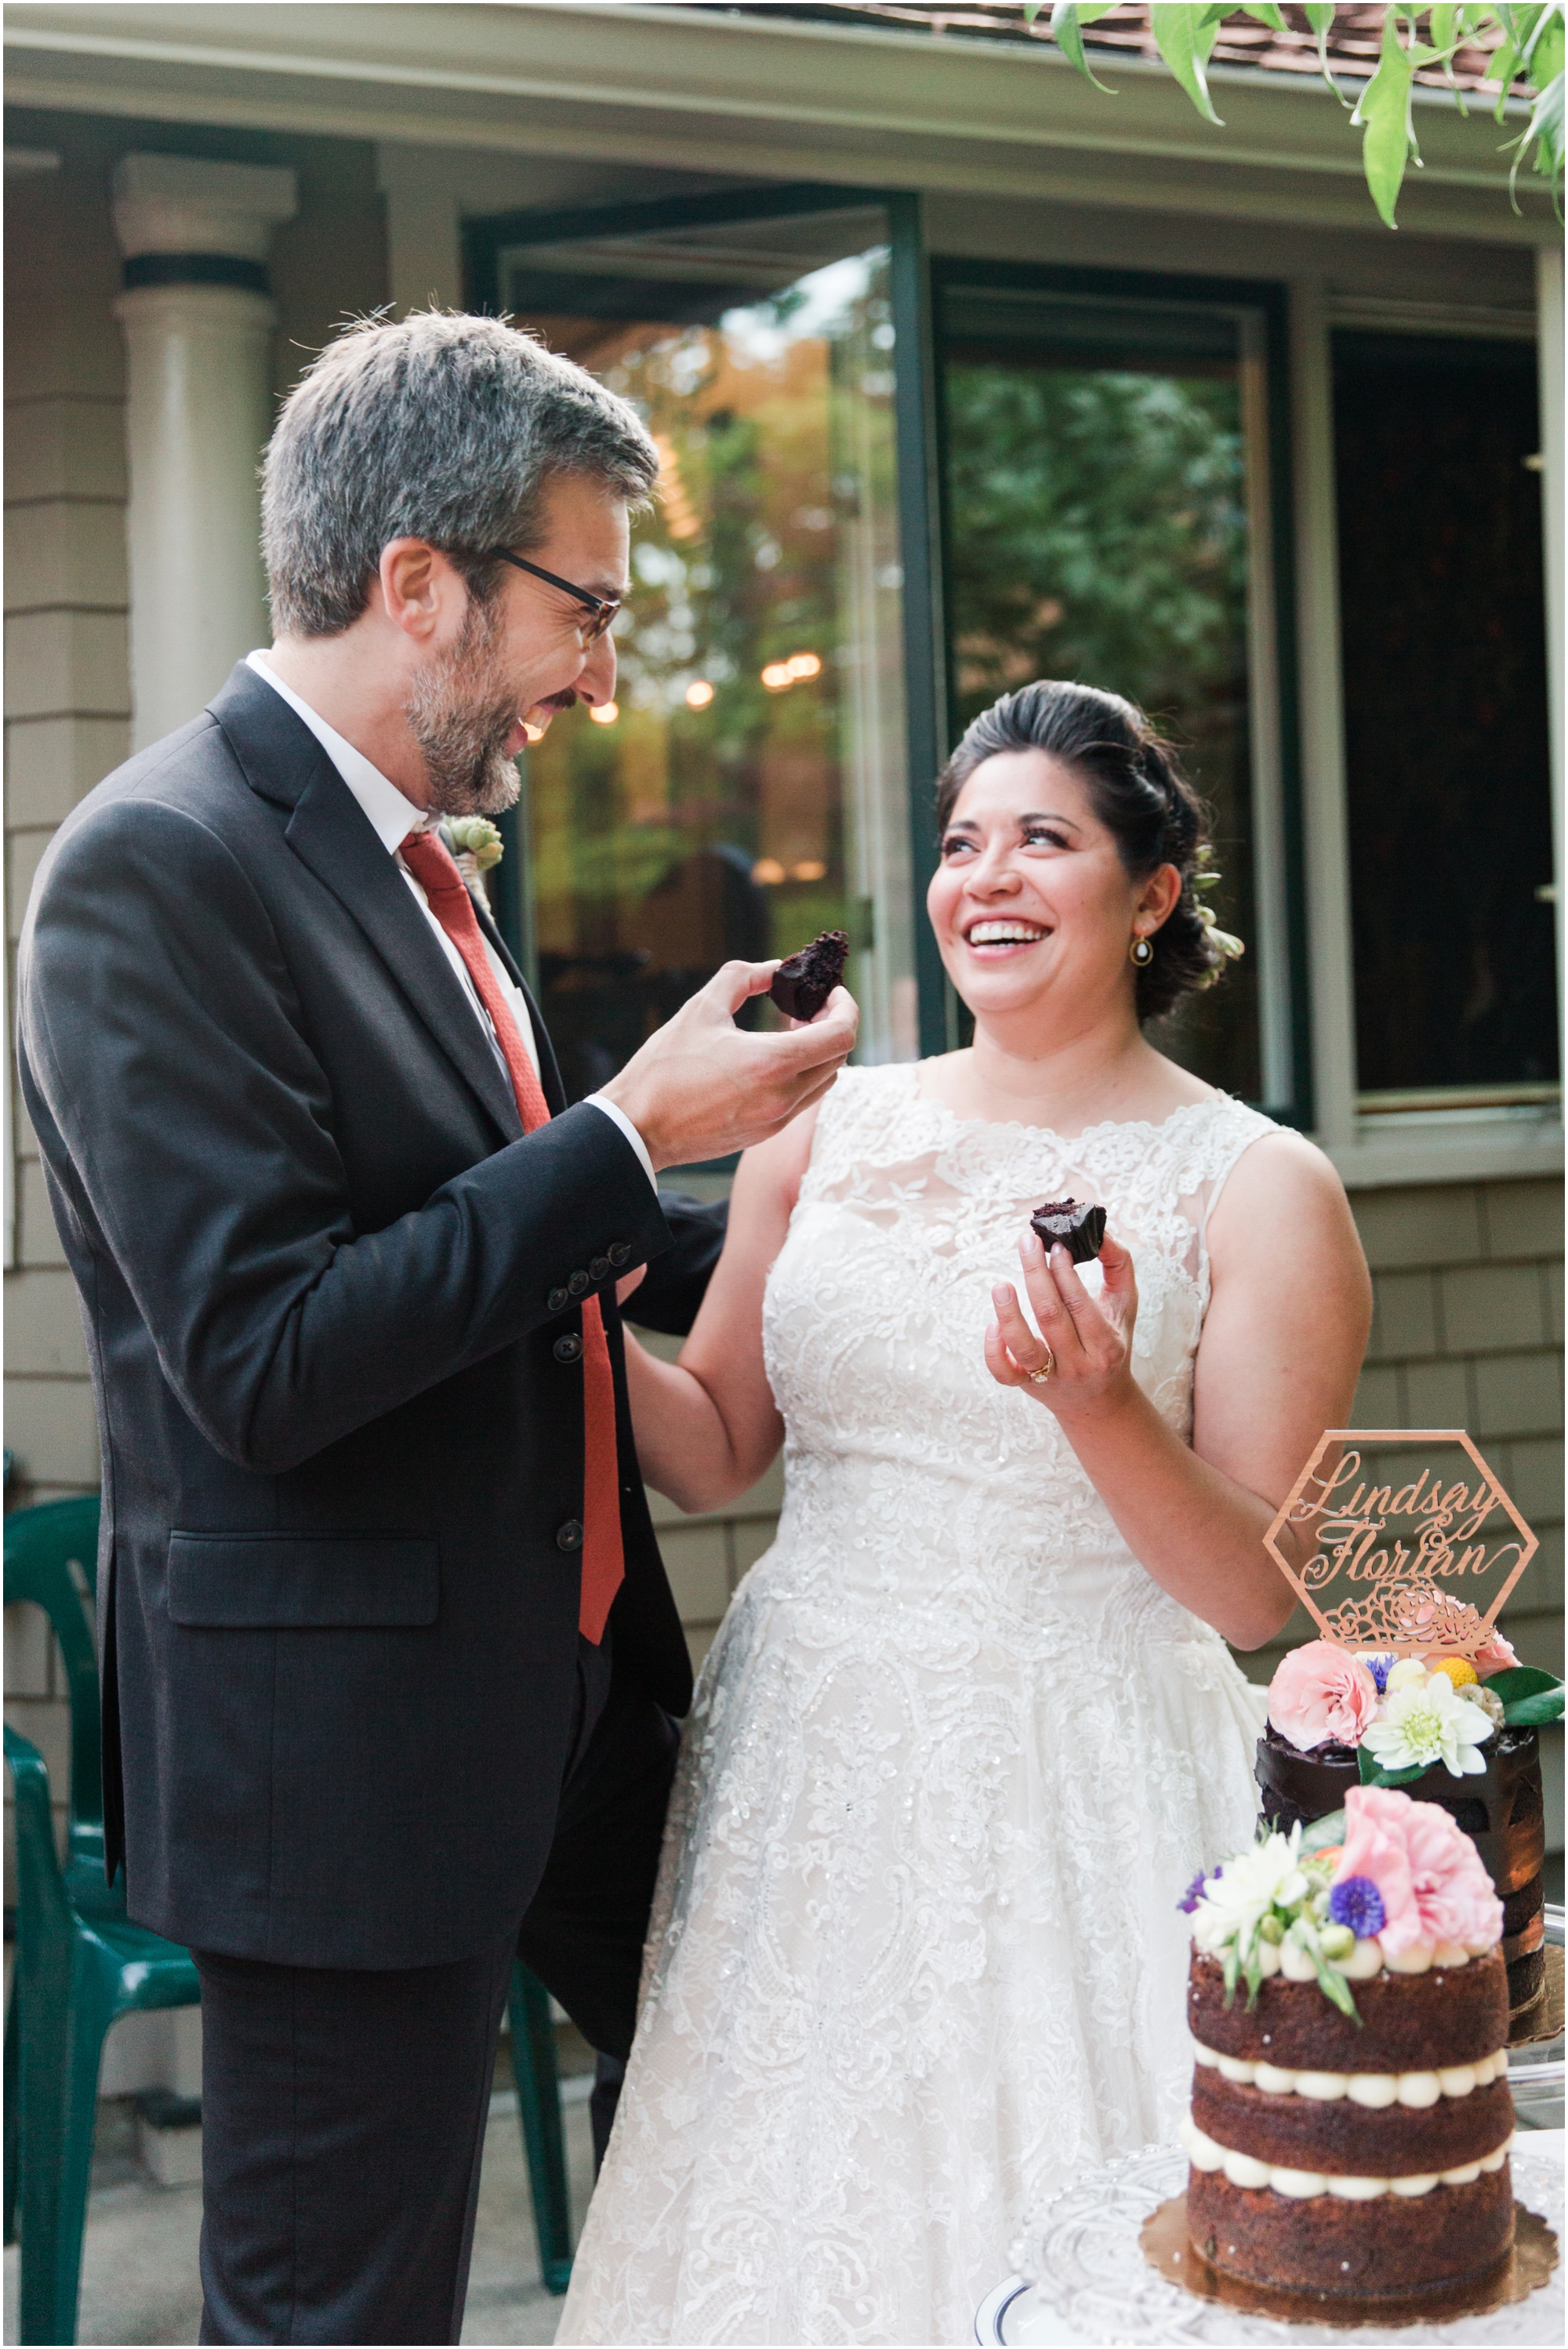 Garden wedding in Ellensburg, WA. Photos by Briana Calderon Photography based in the greater Seattle-Tacoma Area._1363.jpg